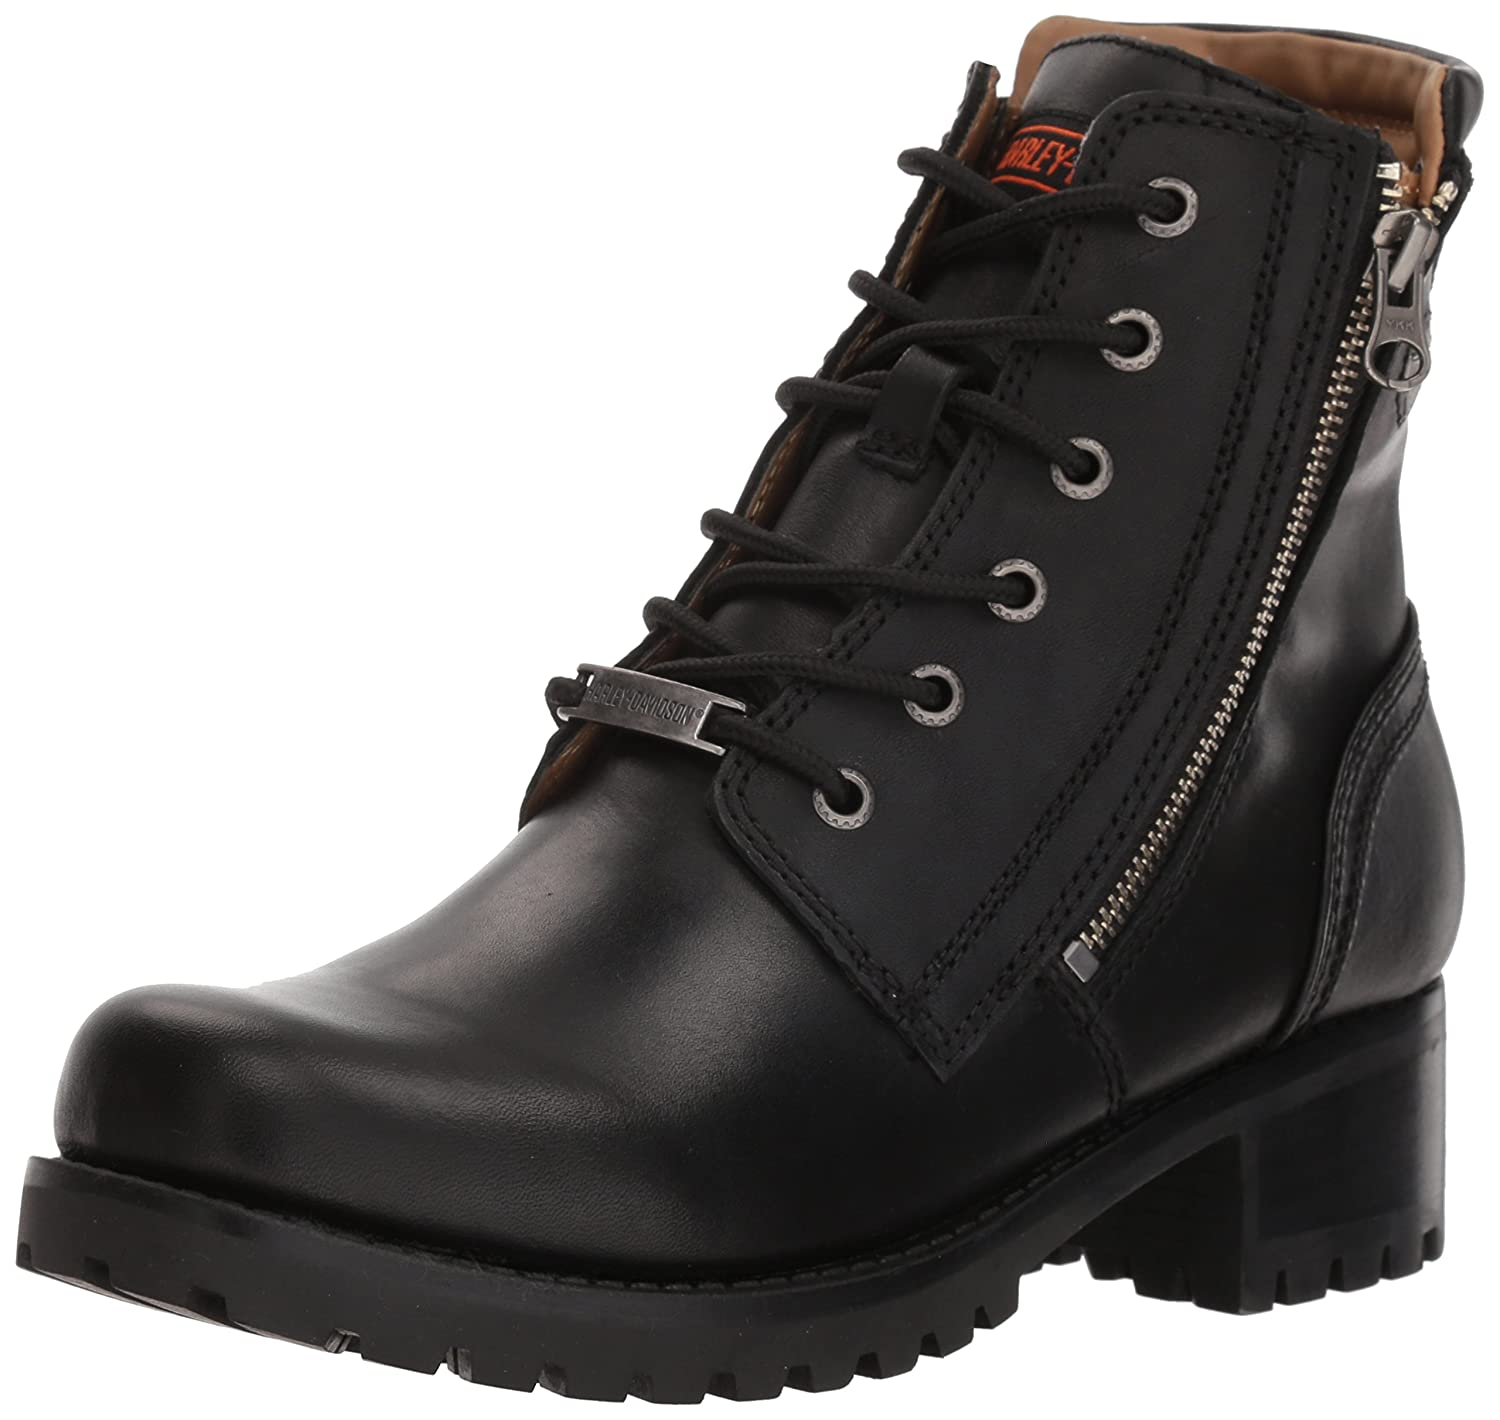 3a38a504d969 Amazon.com  Harley-Davidson Women s Asher Motorcycle Boot  Harley-Davidson   Shoes